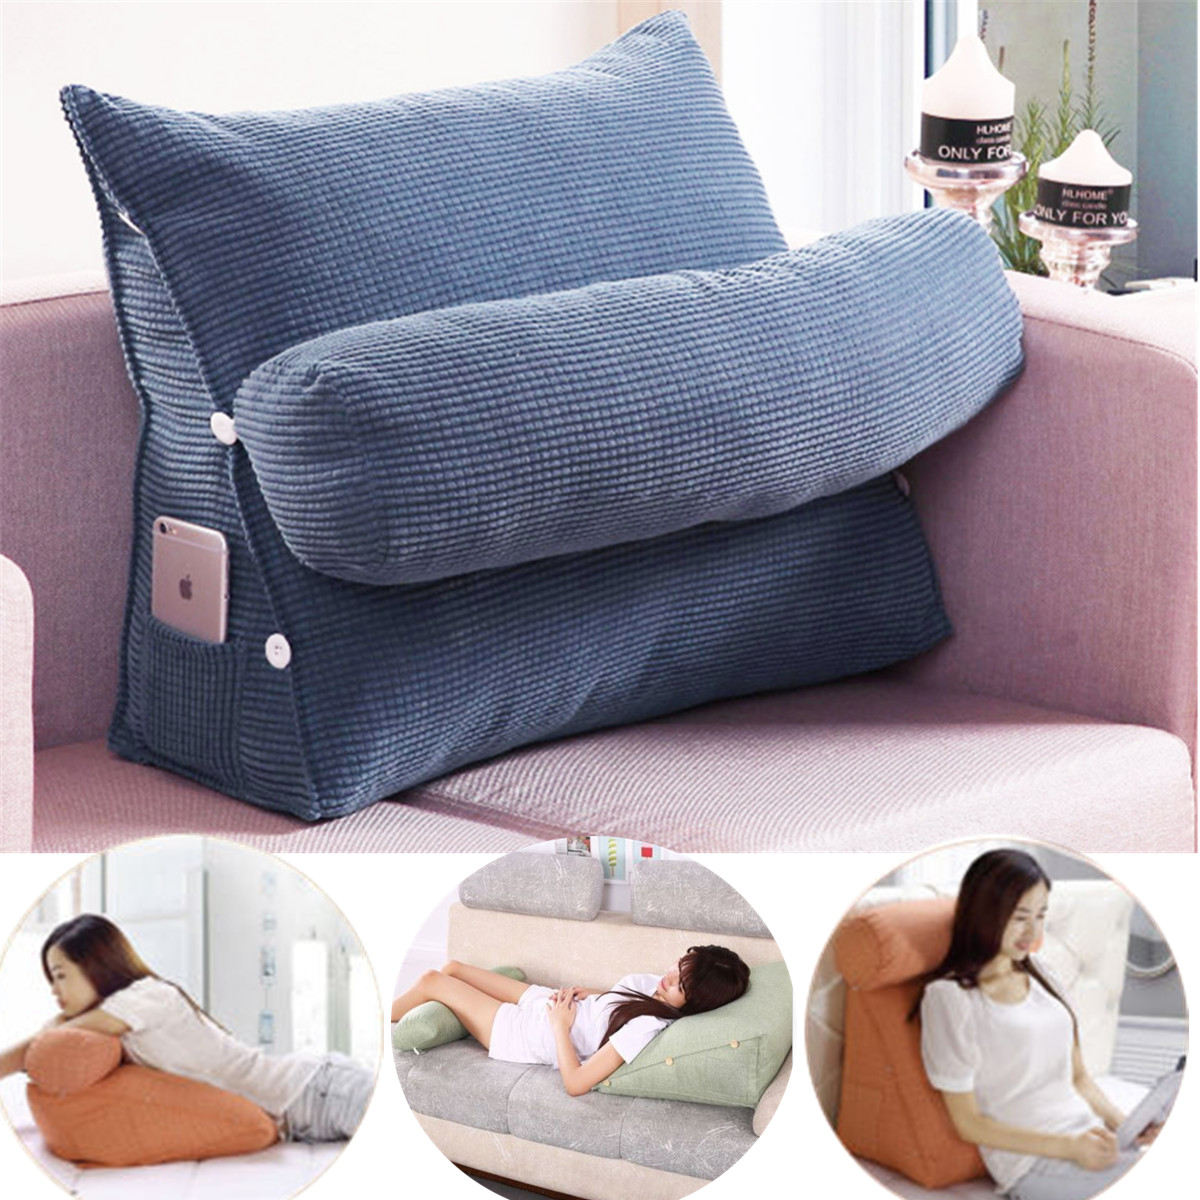 Adjustable Back Wedge Cushion Pillow Sofa Bed Office Chair Rest Waist Neck Support Best Gift